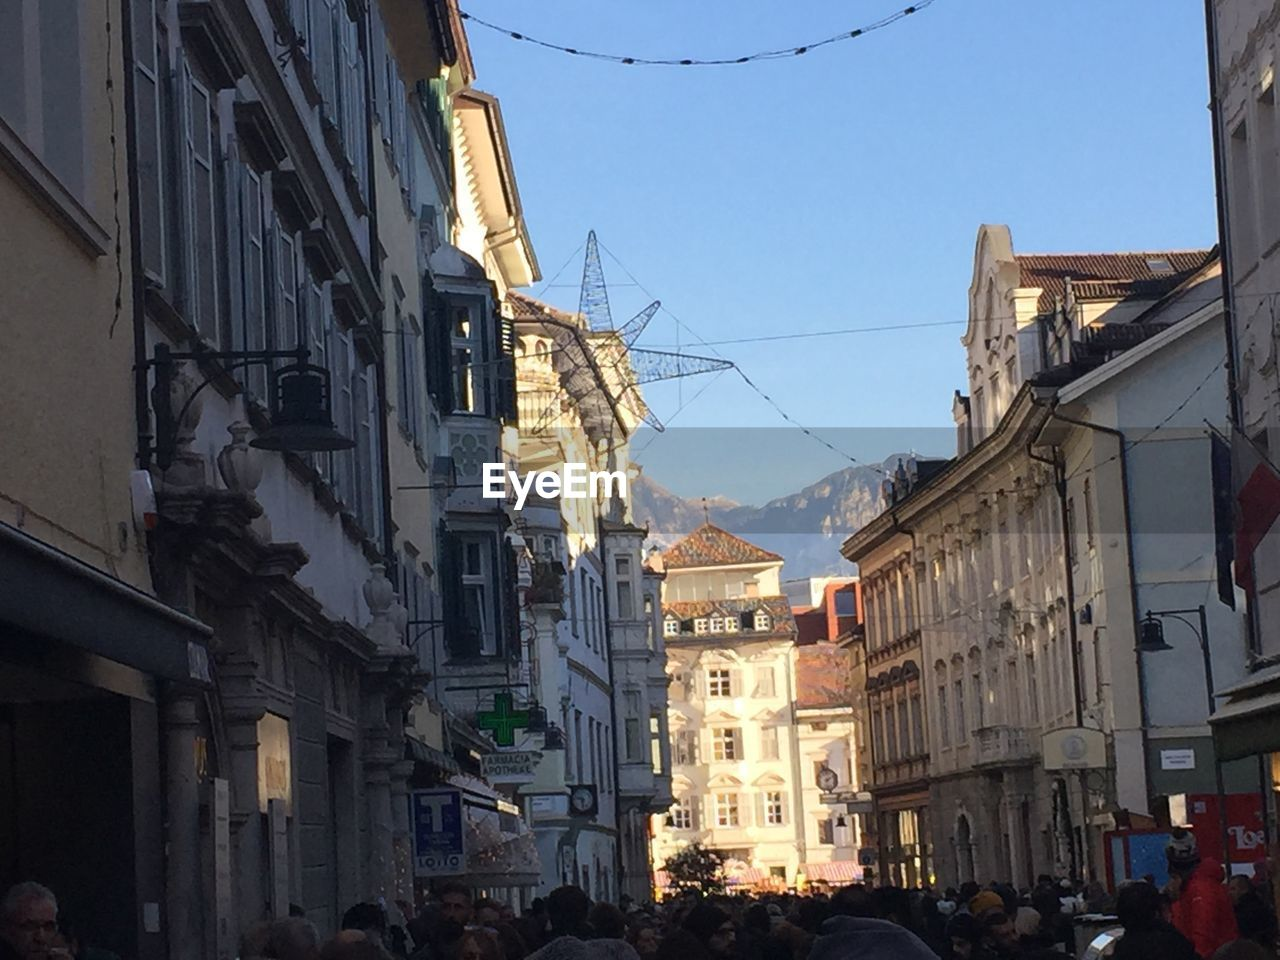 building exterior, architecture, built structure, city, building, sky, residential district, nature, day, clear sky, street, outdoors, incidental people, cable, real people, mountain, group of people, sunlight, town, motor vehicle